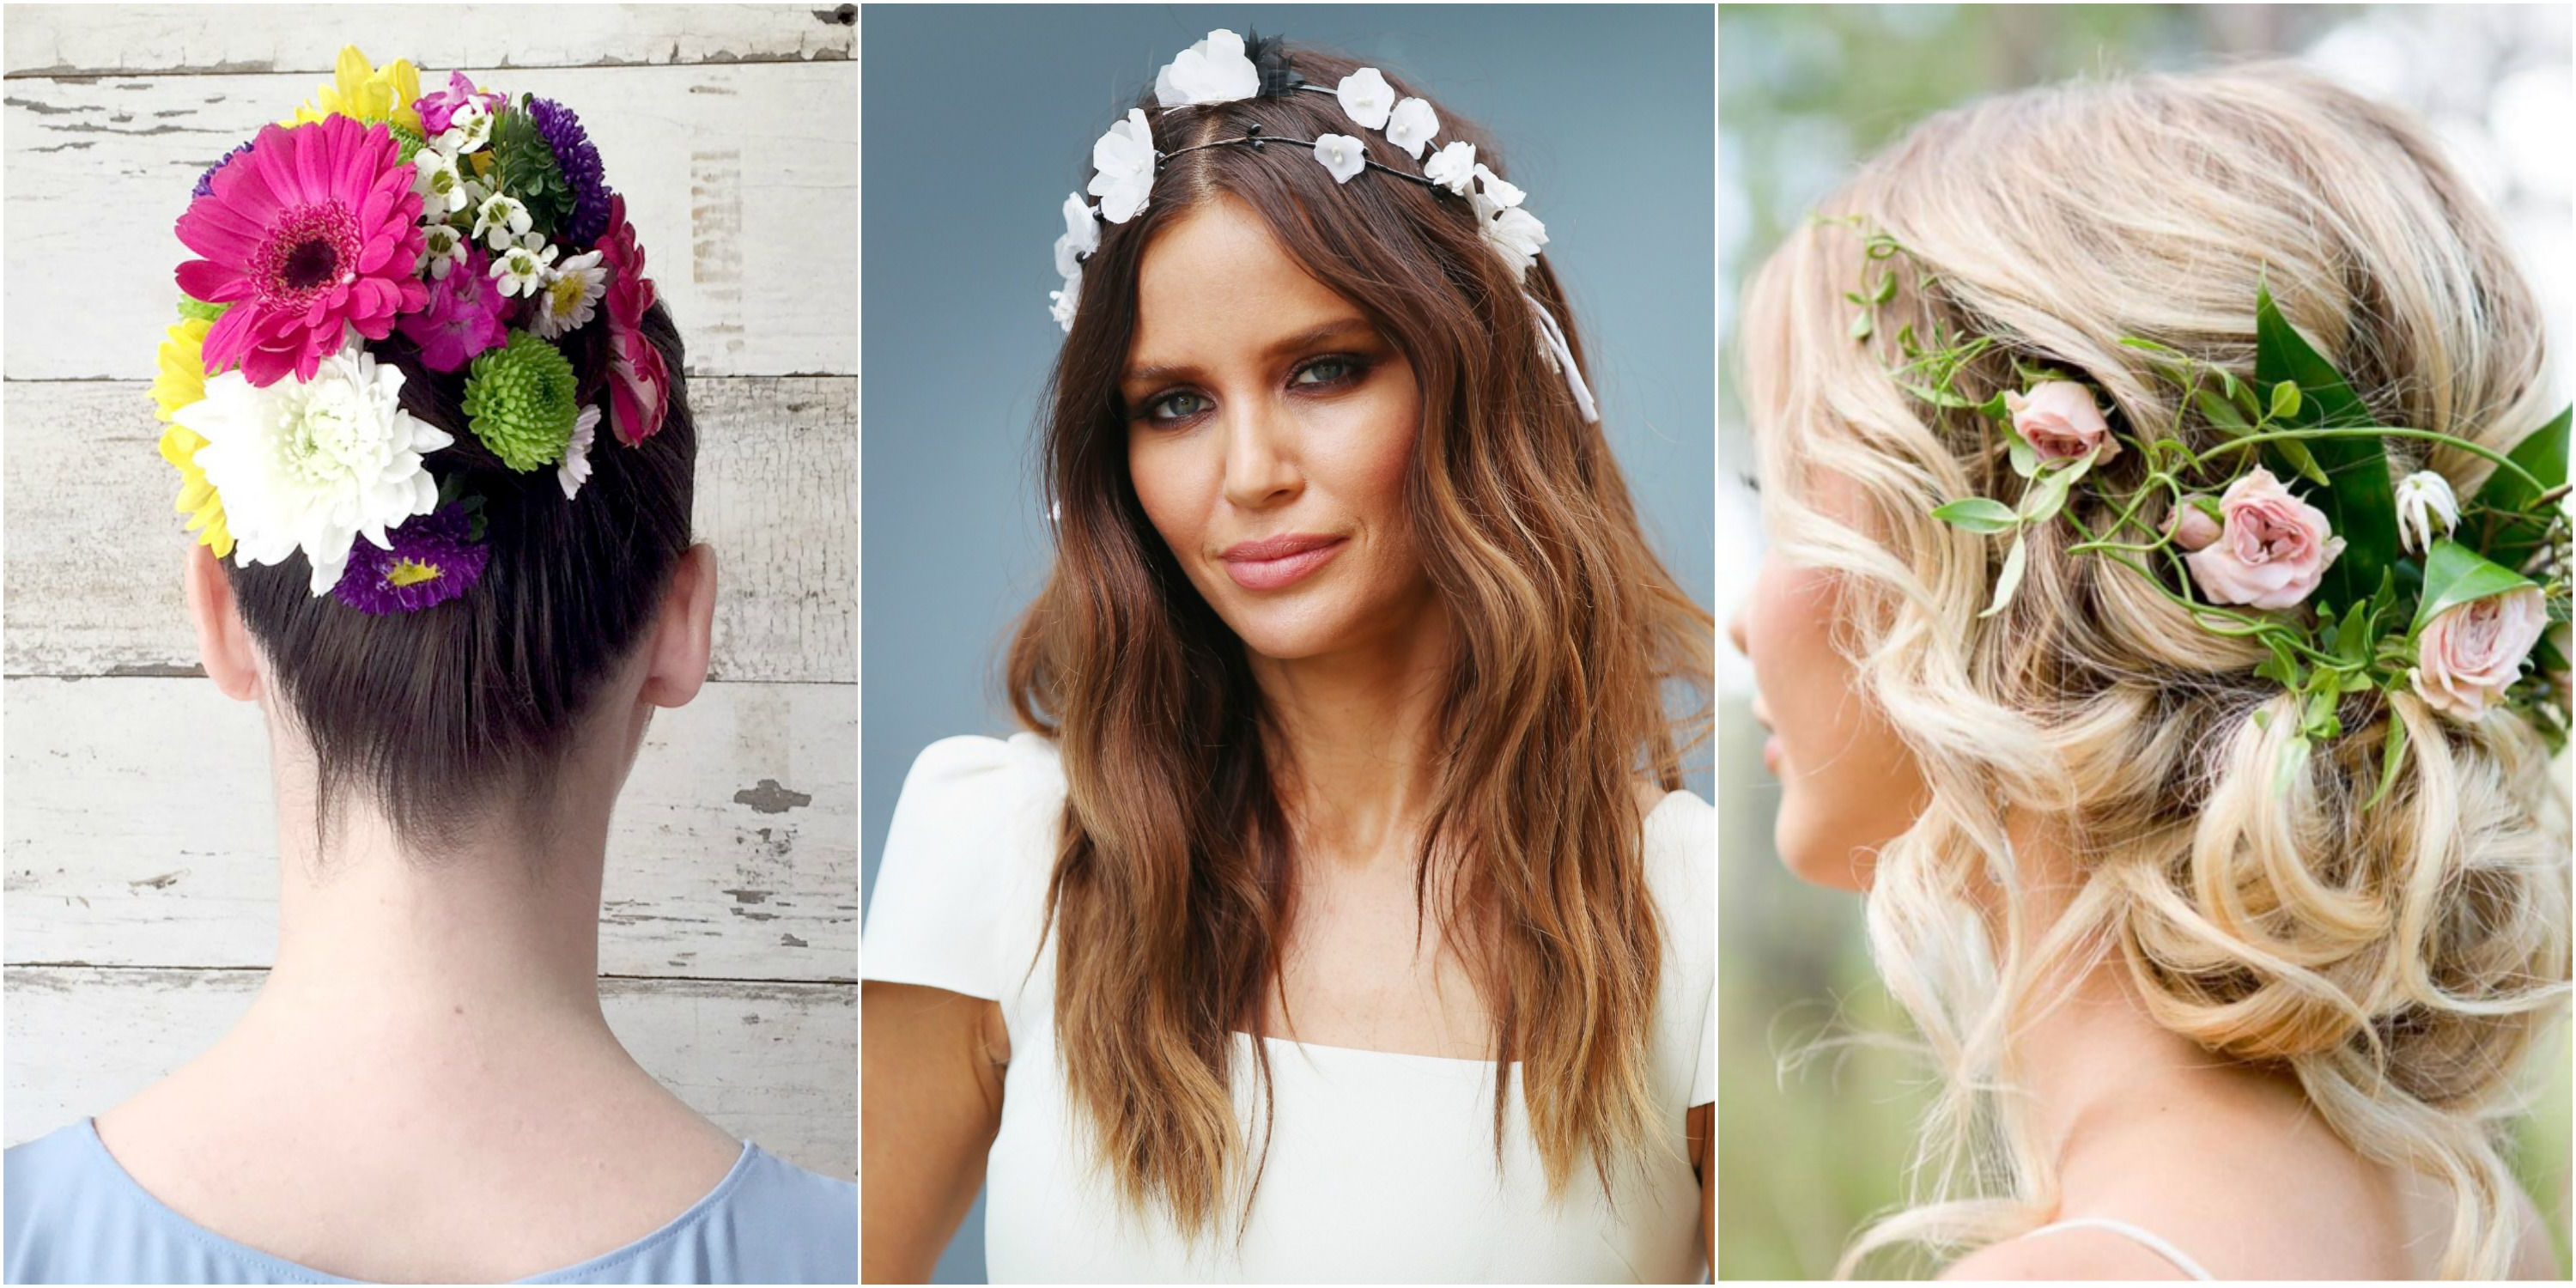 12 Pretty Flower Crowns And Floral Hairstyles — Flower Hairstyles Within Well Known Double Braid Bridal Hairstyles With Fresh Flowers (Gallery 12 of 20)